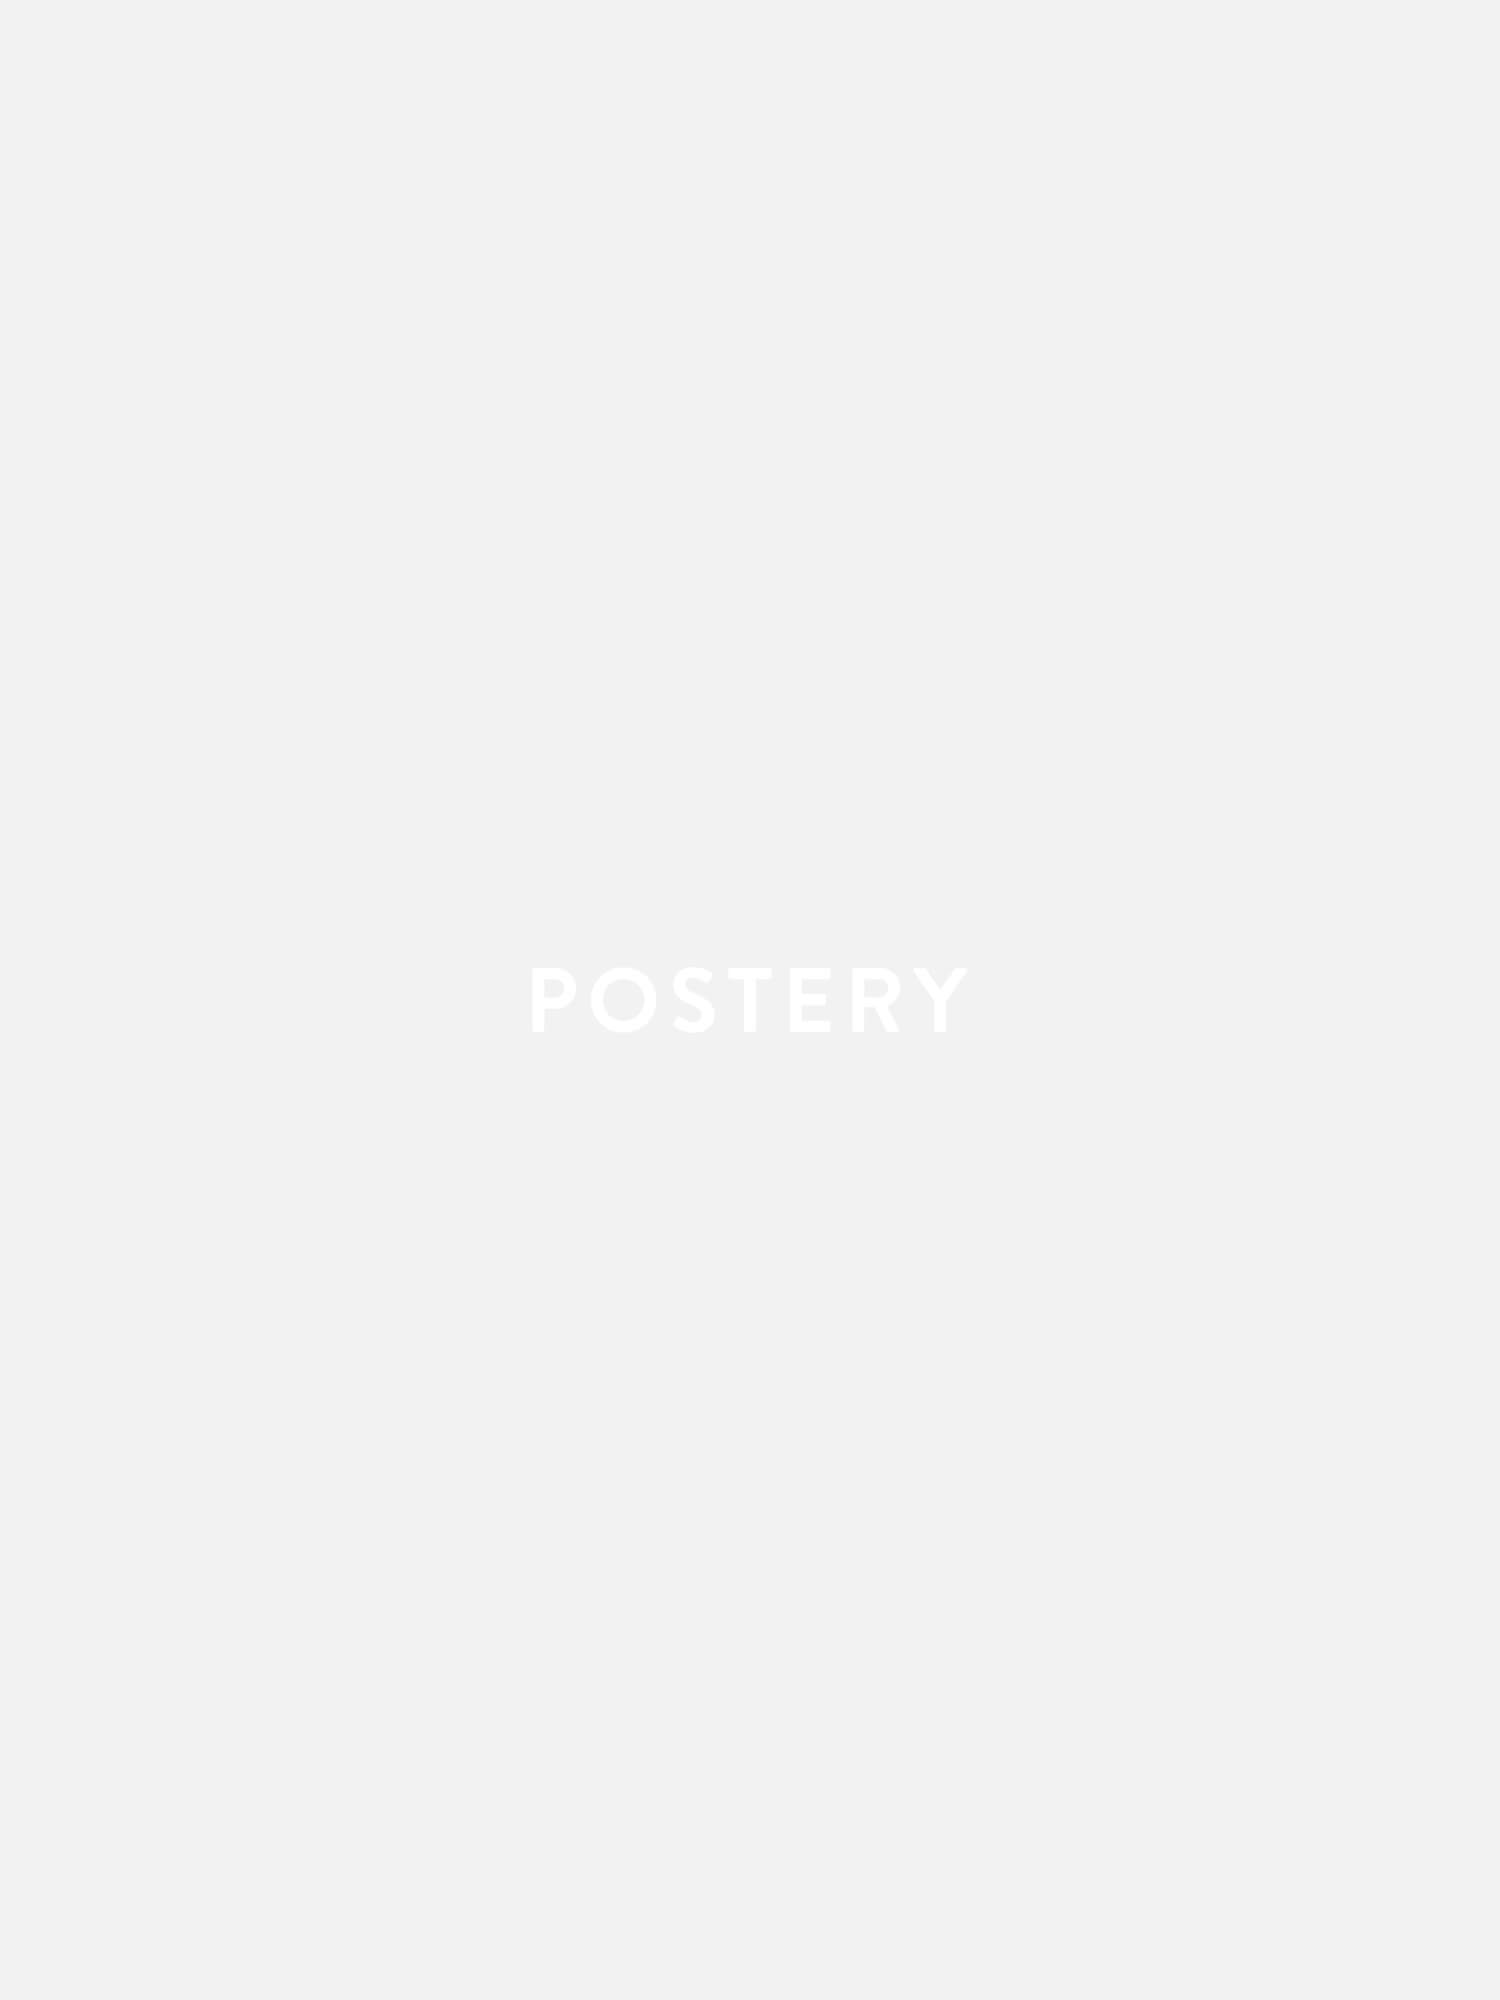 Japanese Cranes Poster